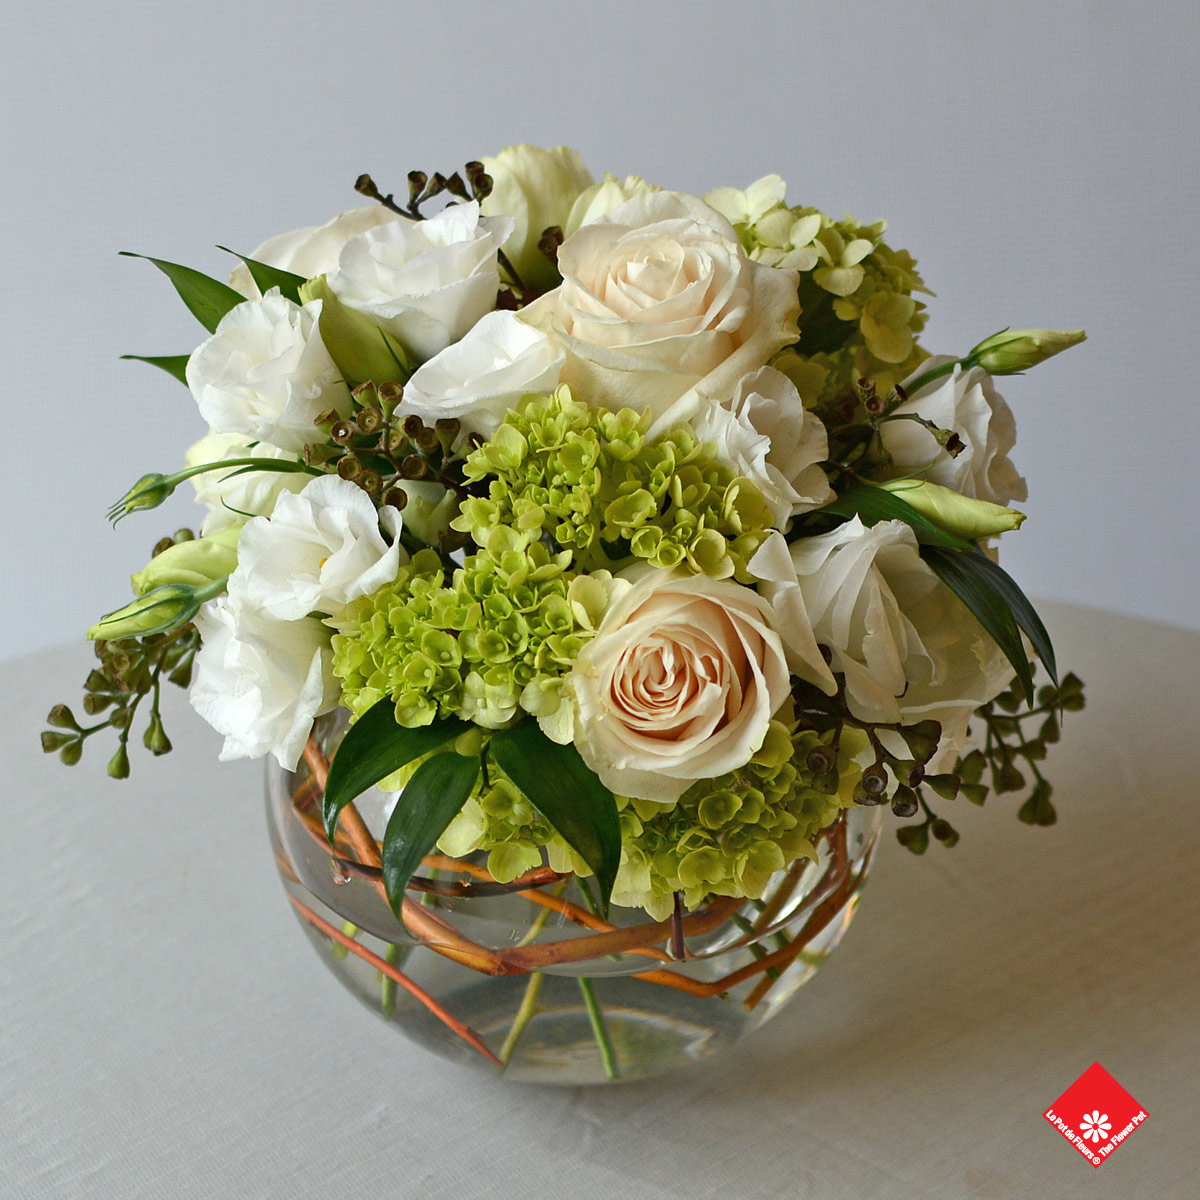 An elegant choice for a wedding centrepiece, birthday bouquet, intimate floral offering made up of cream and white coloured roses.